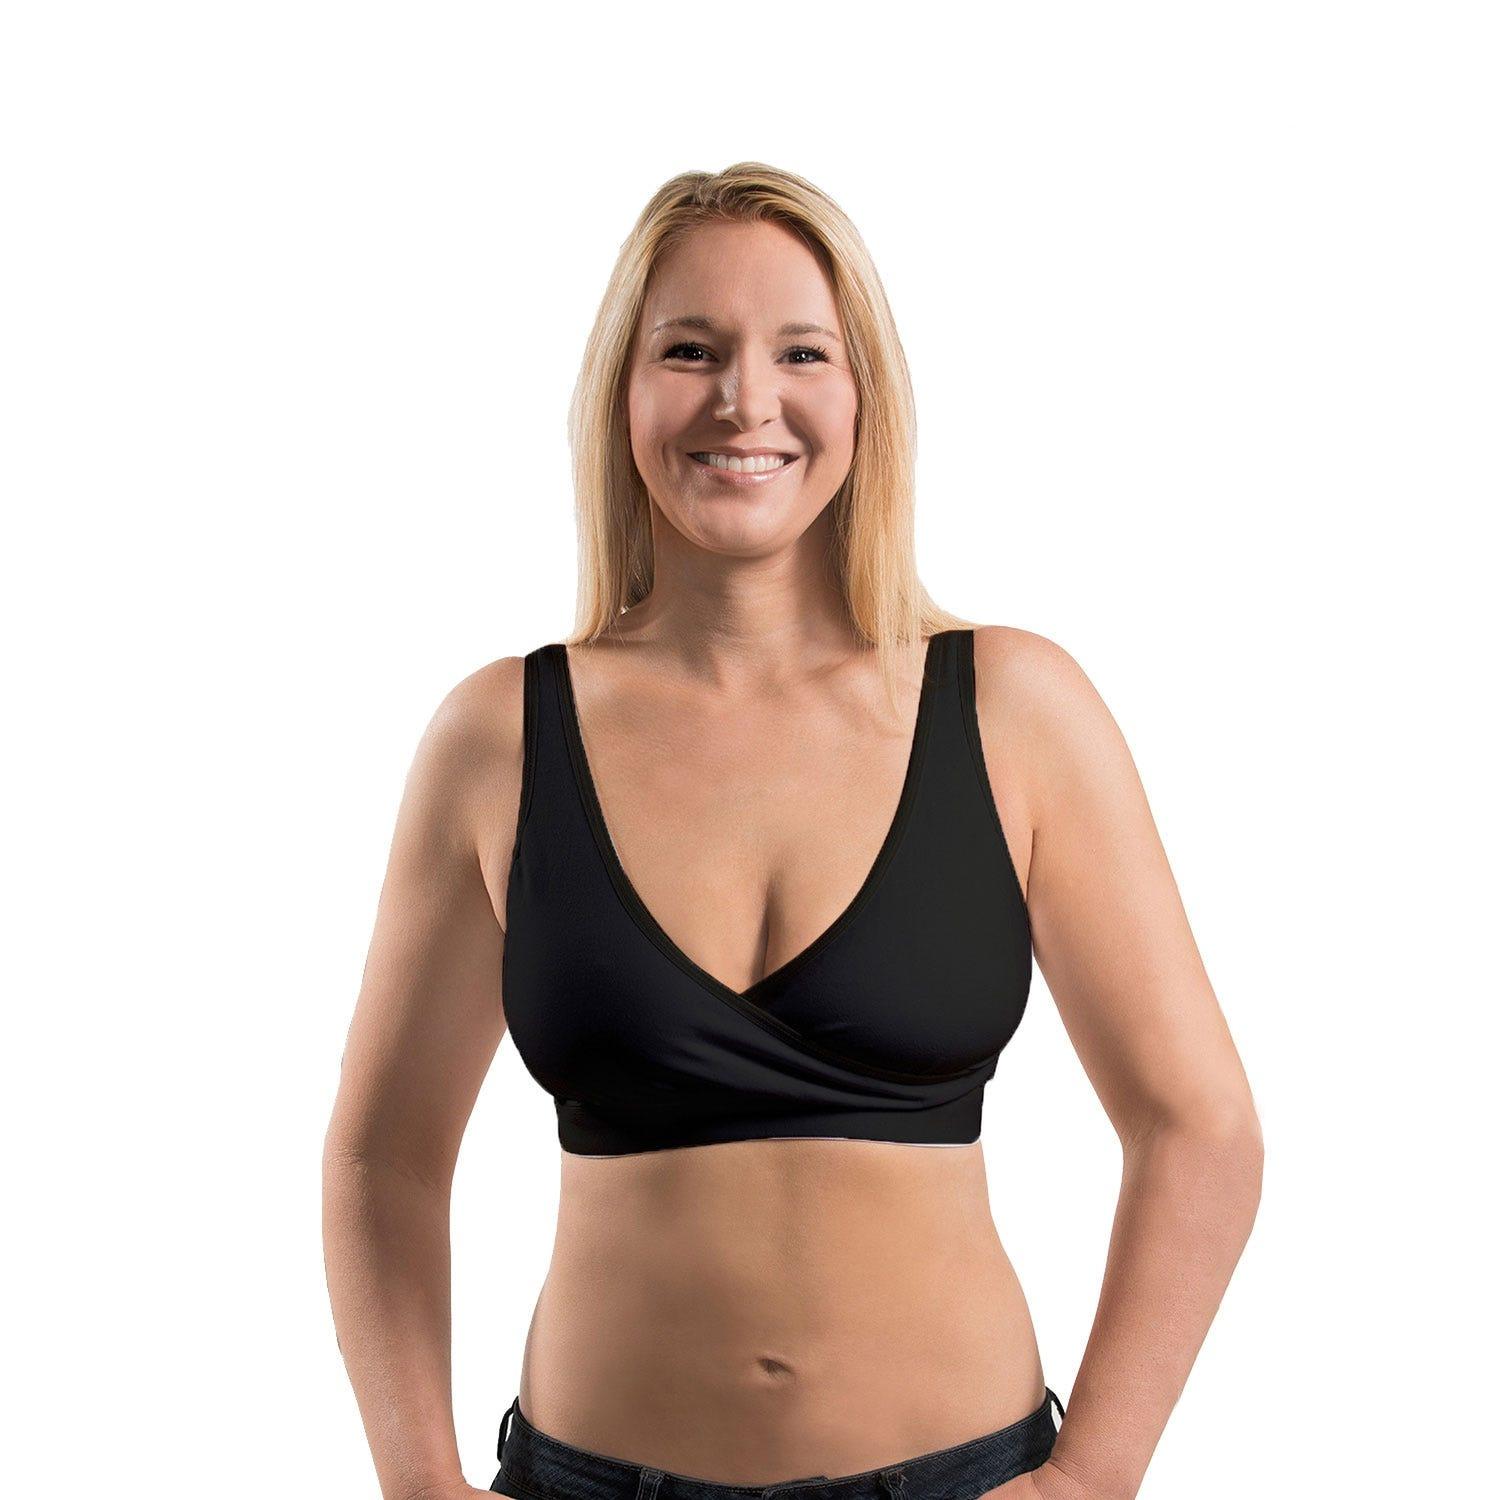 Rumina Essential Pump & Nurse Bra In Black, Size Medium